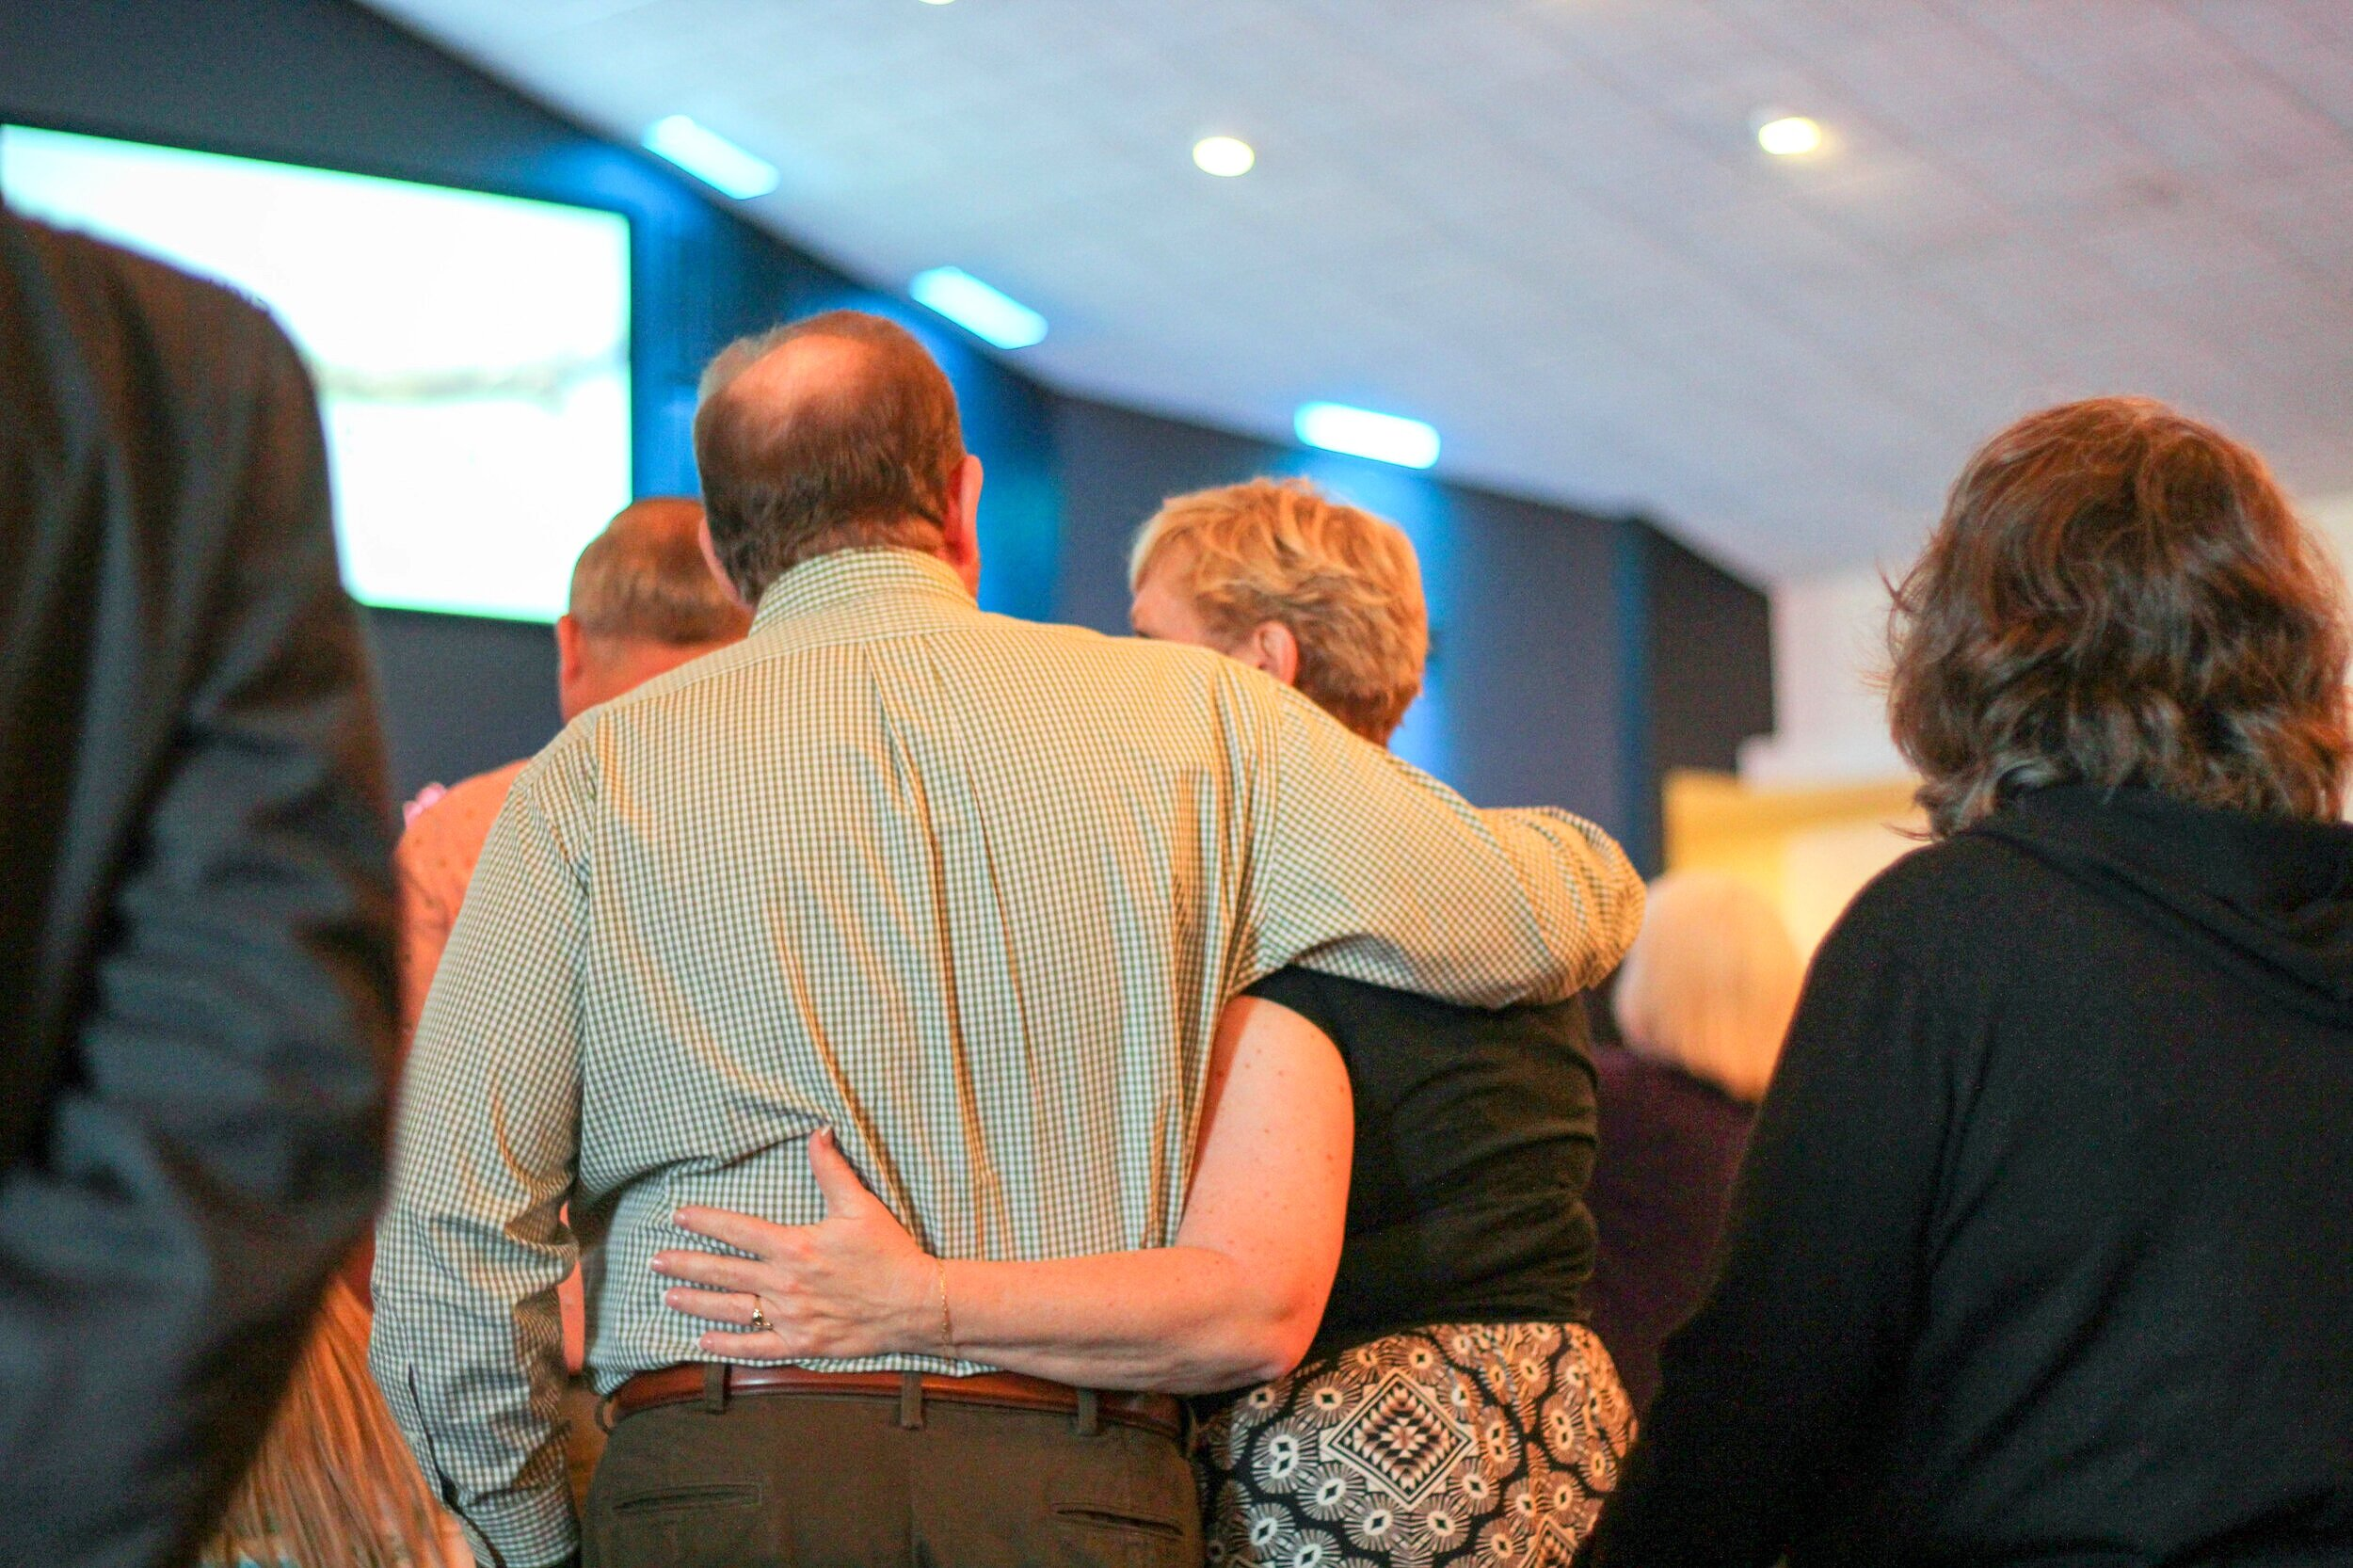 Marriage & Family - Great marriages and families require intentional investment. We offer distraction-free sessions with biblically-based insights, relaxing alone time, encouragement, and spiritual enrichment in a venue of Christian fellowship.